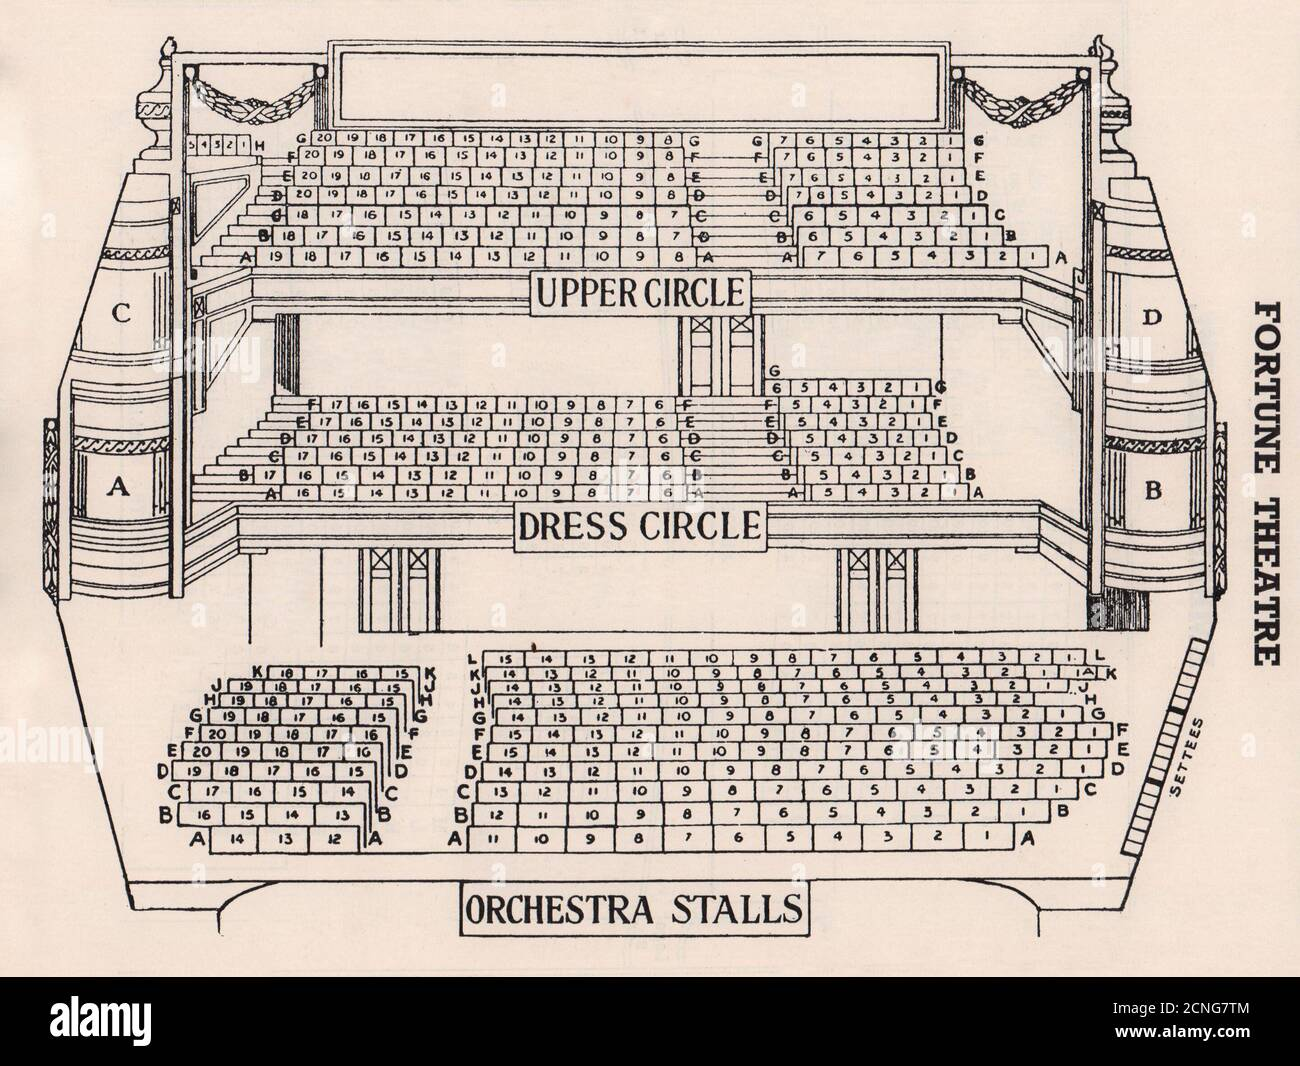 Upper Circle Theatre High Resolution Stock Photography And Images Alamy